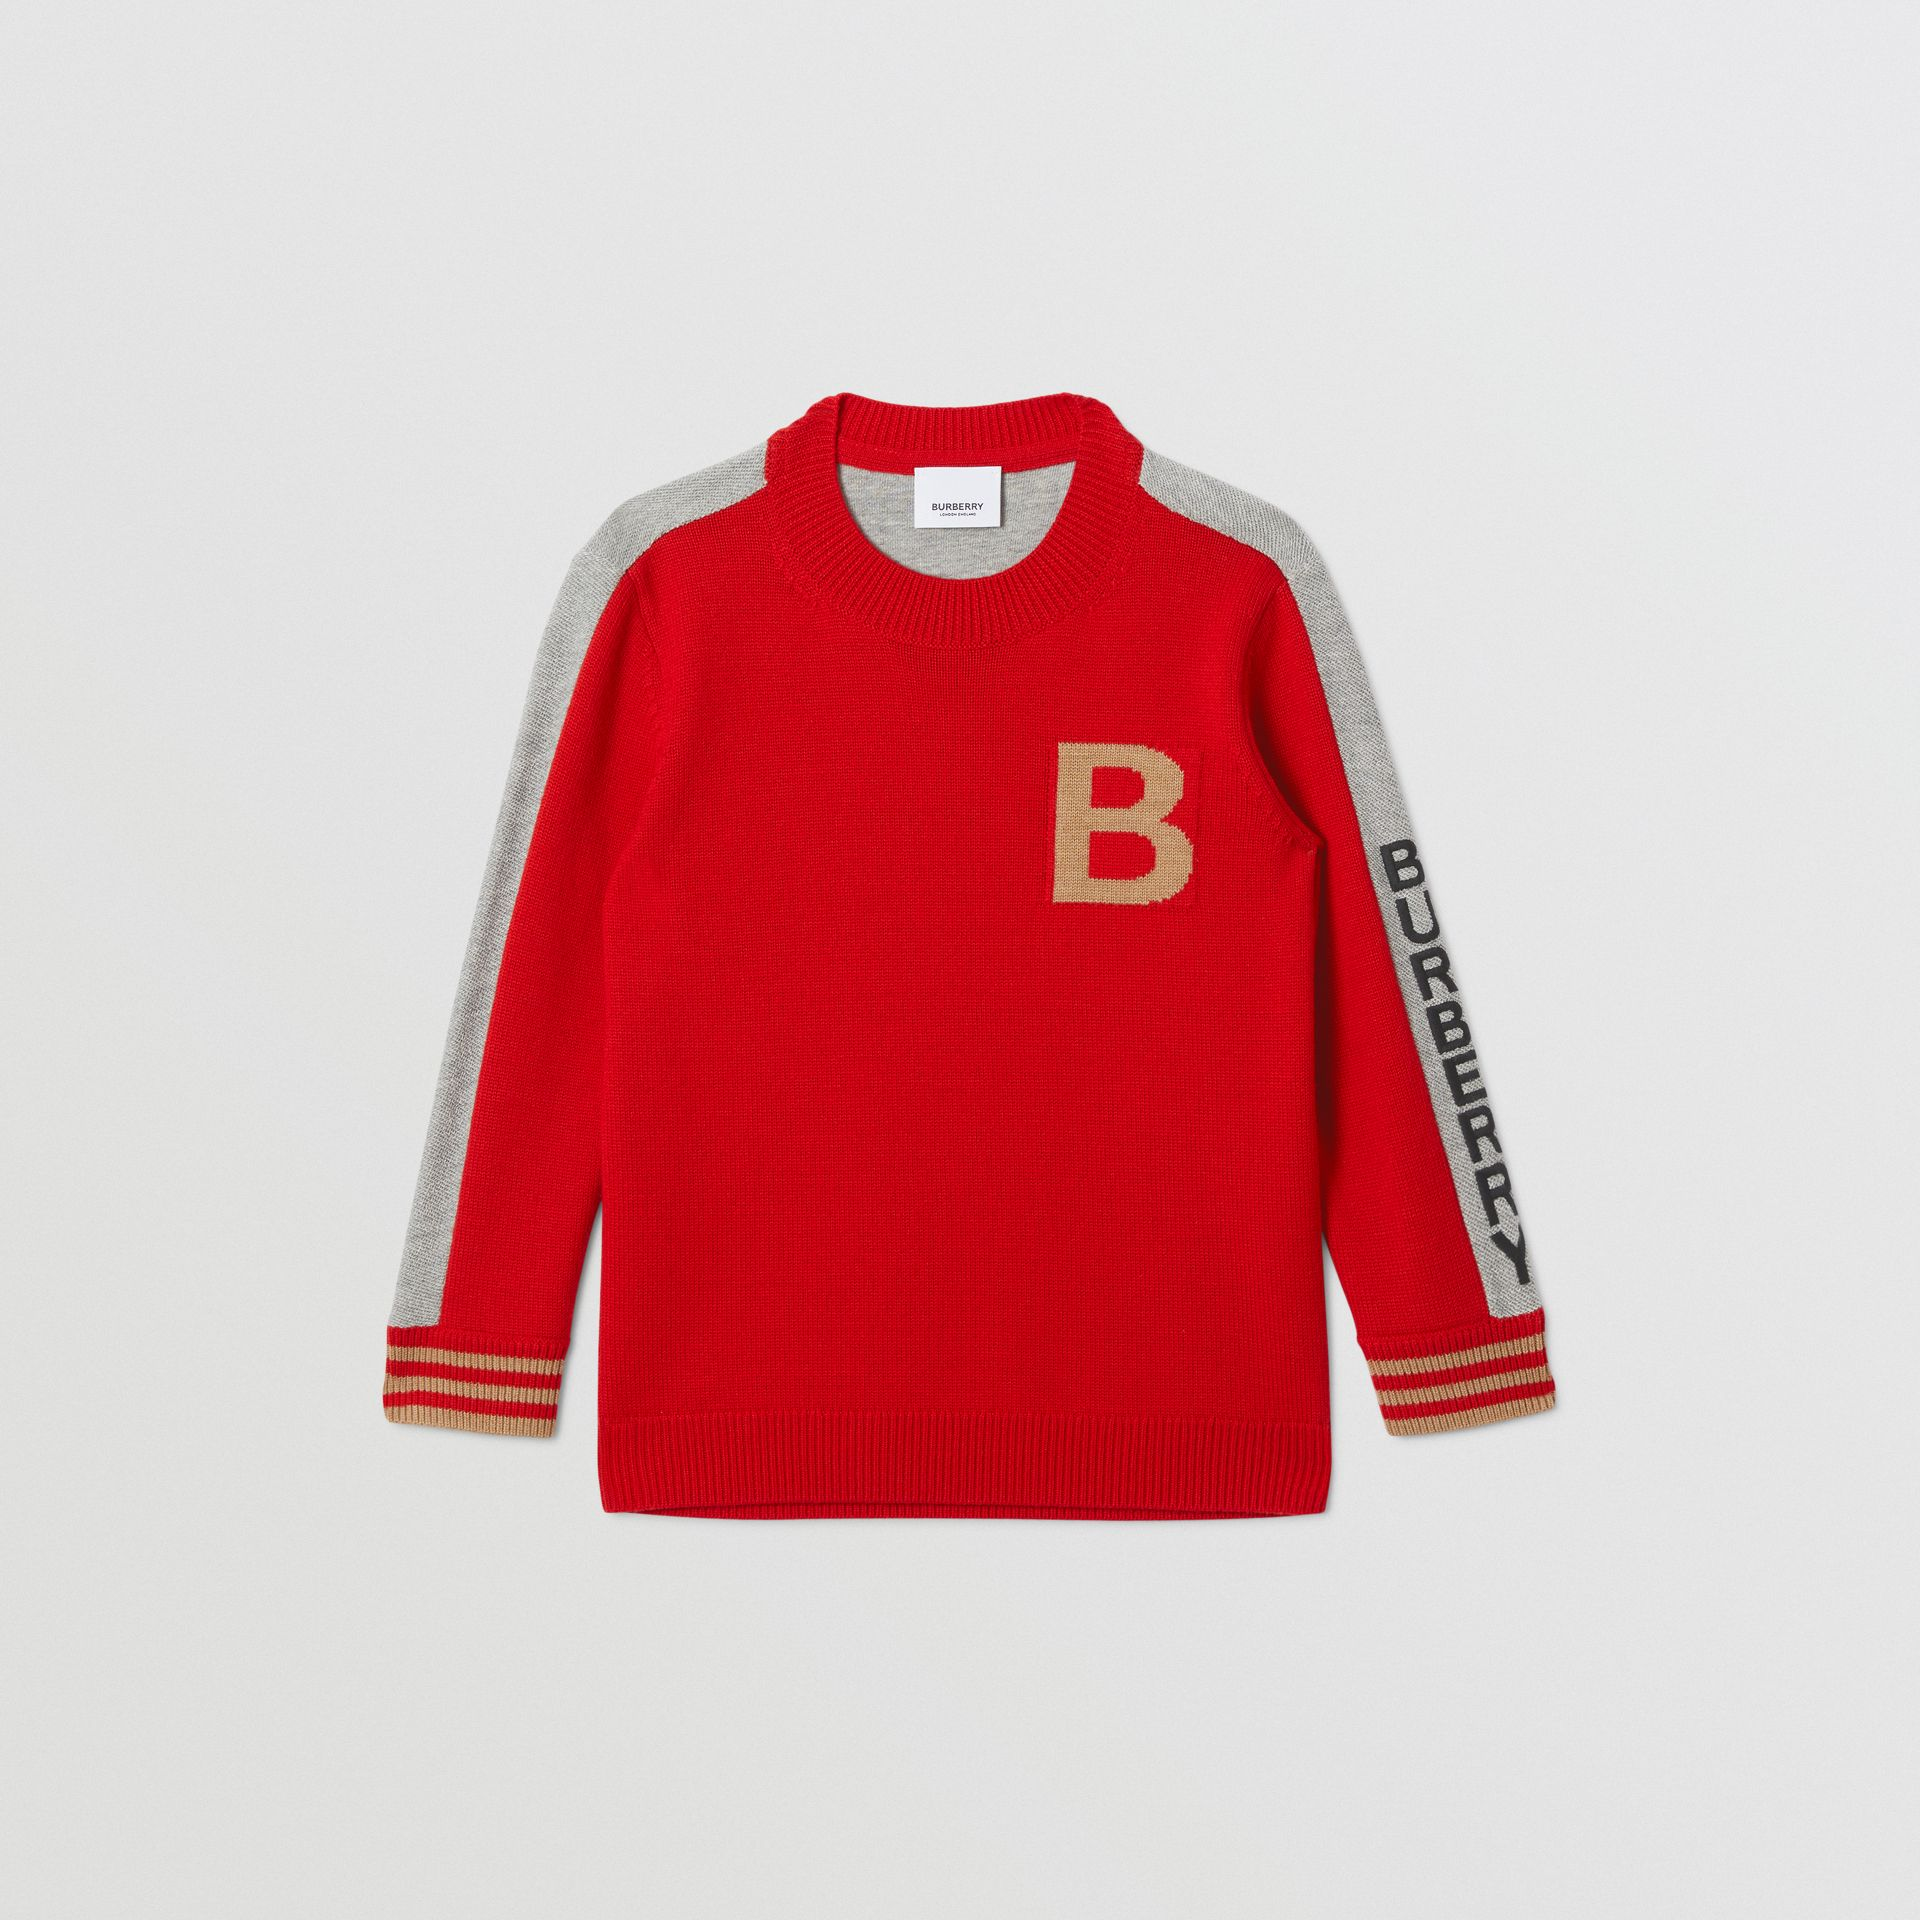 B Motif Merino Wool Jacquard Sweater in Bright Red | Burberry Australia - gallery image 0